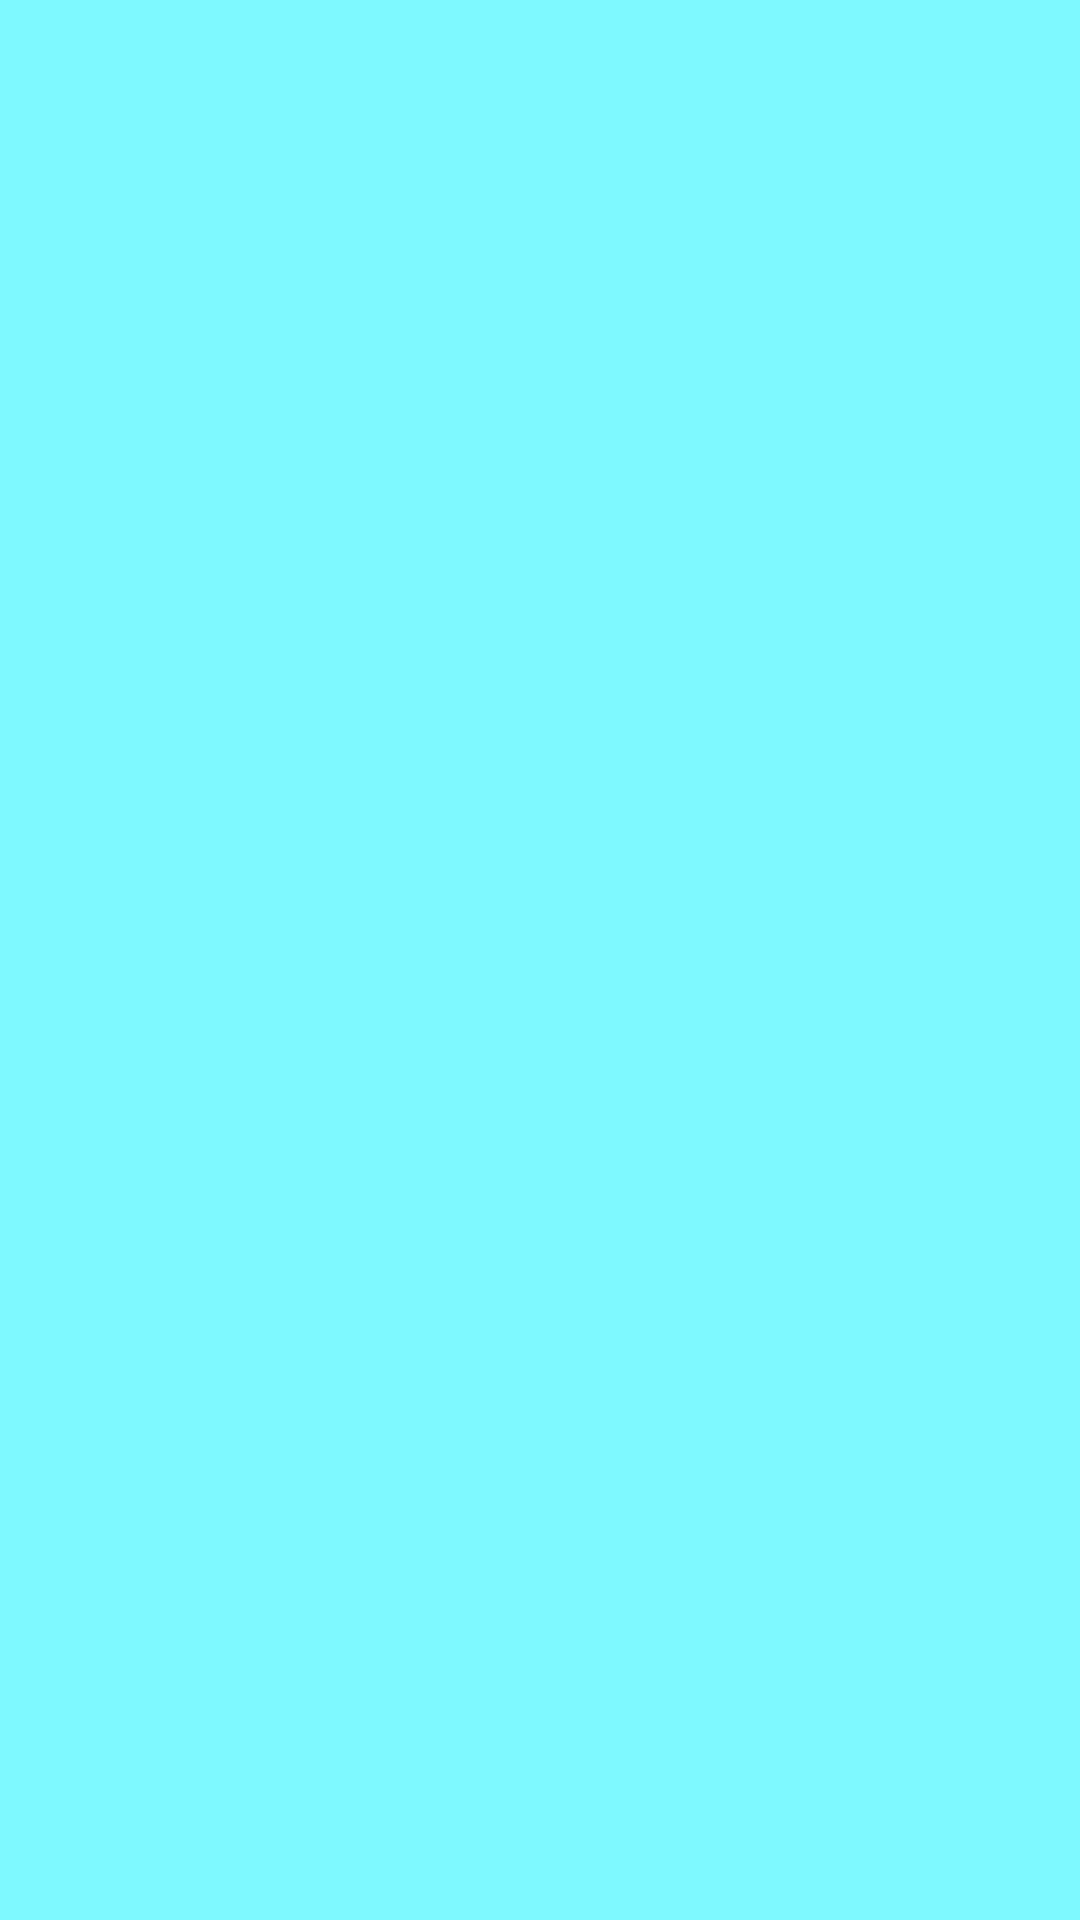 1080x1920 Electric Blue Solid Color Background